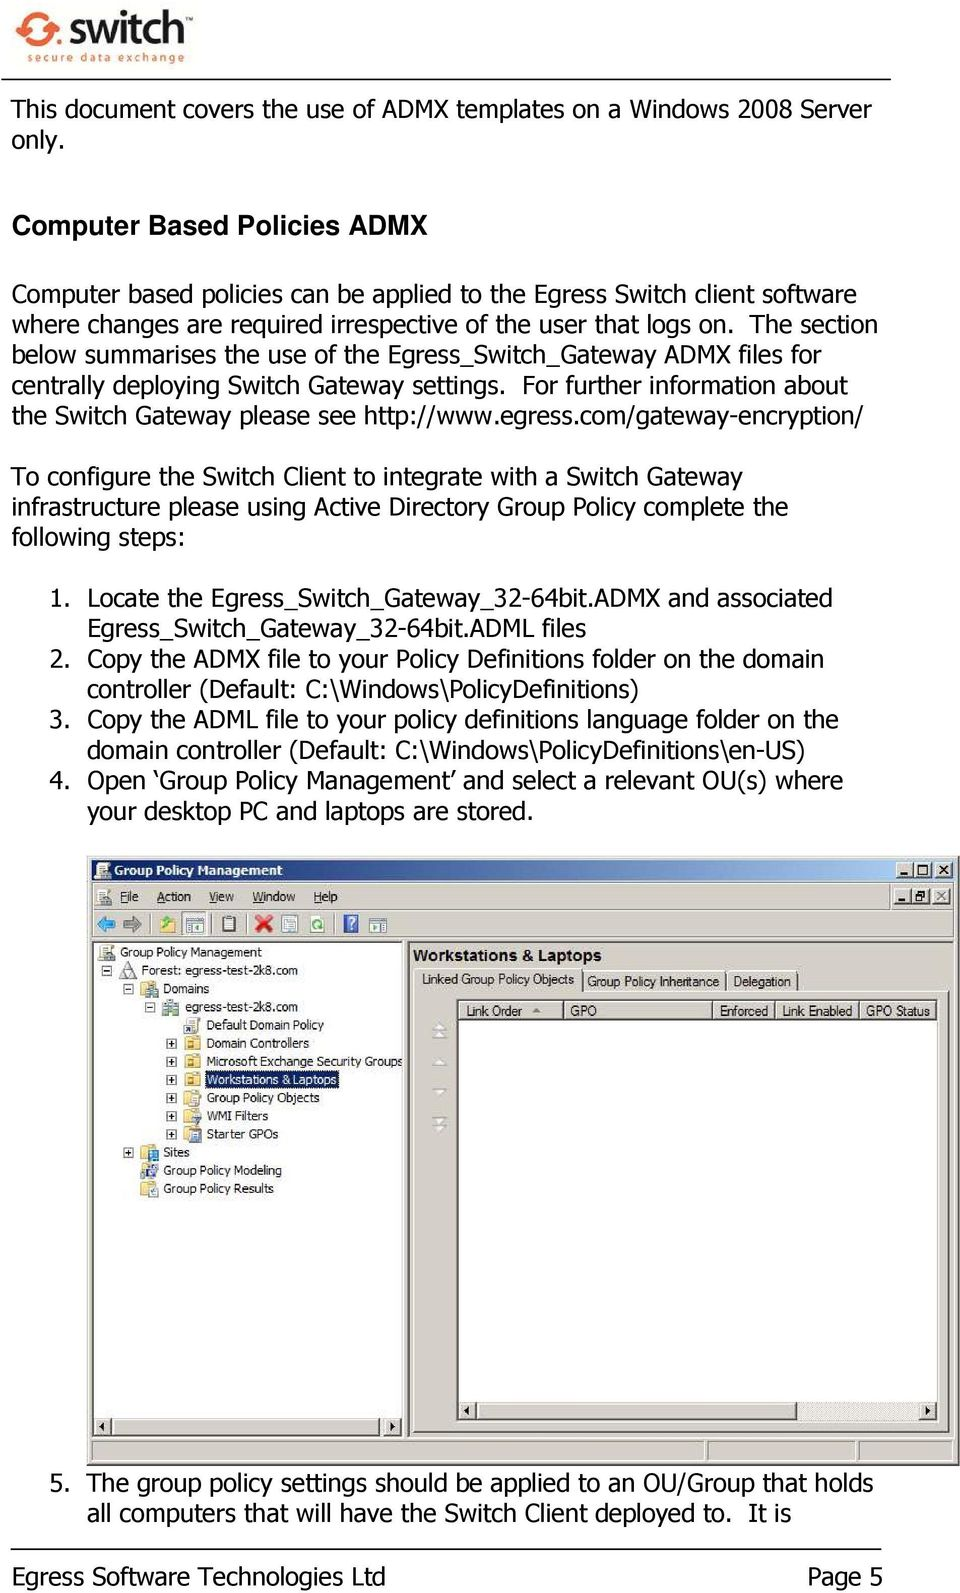 The section below summarises the use of the Egress_Switch_Gateway ADMX files for centrally deploying Switch Gateway settings. For further information about the Switch Gateway please see http://www.